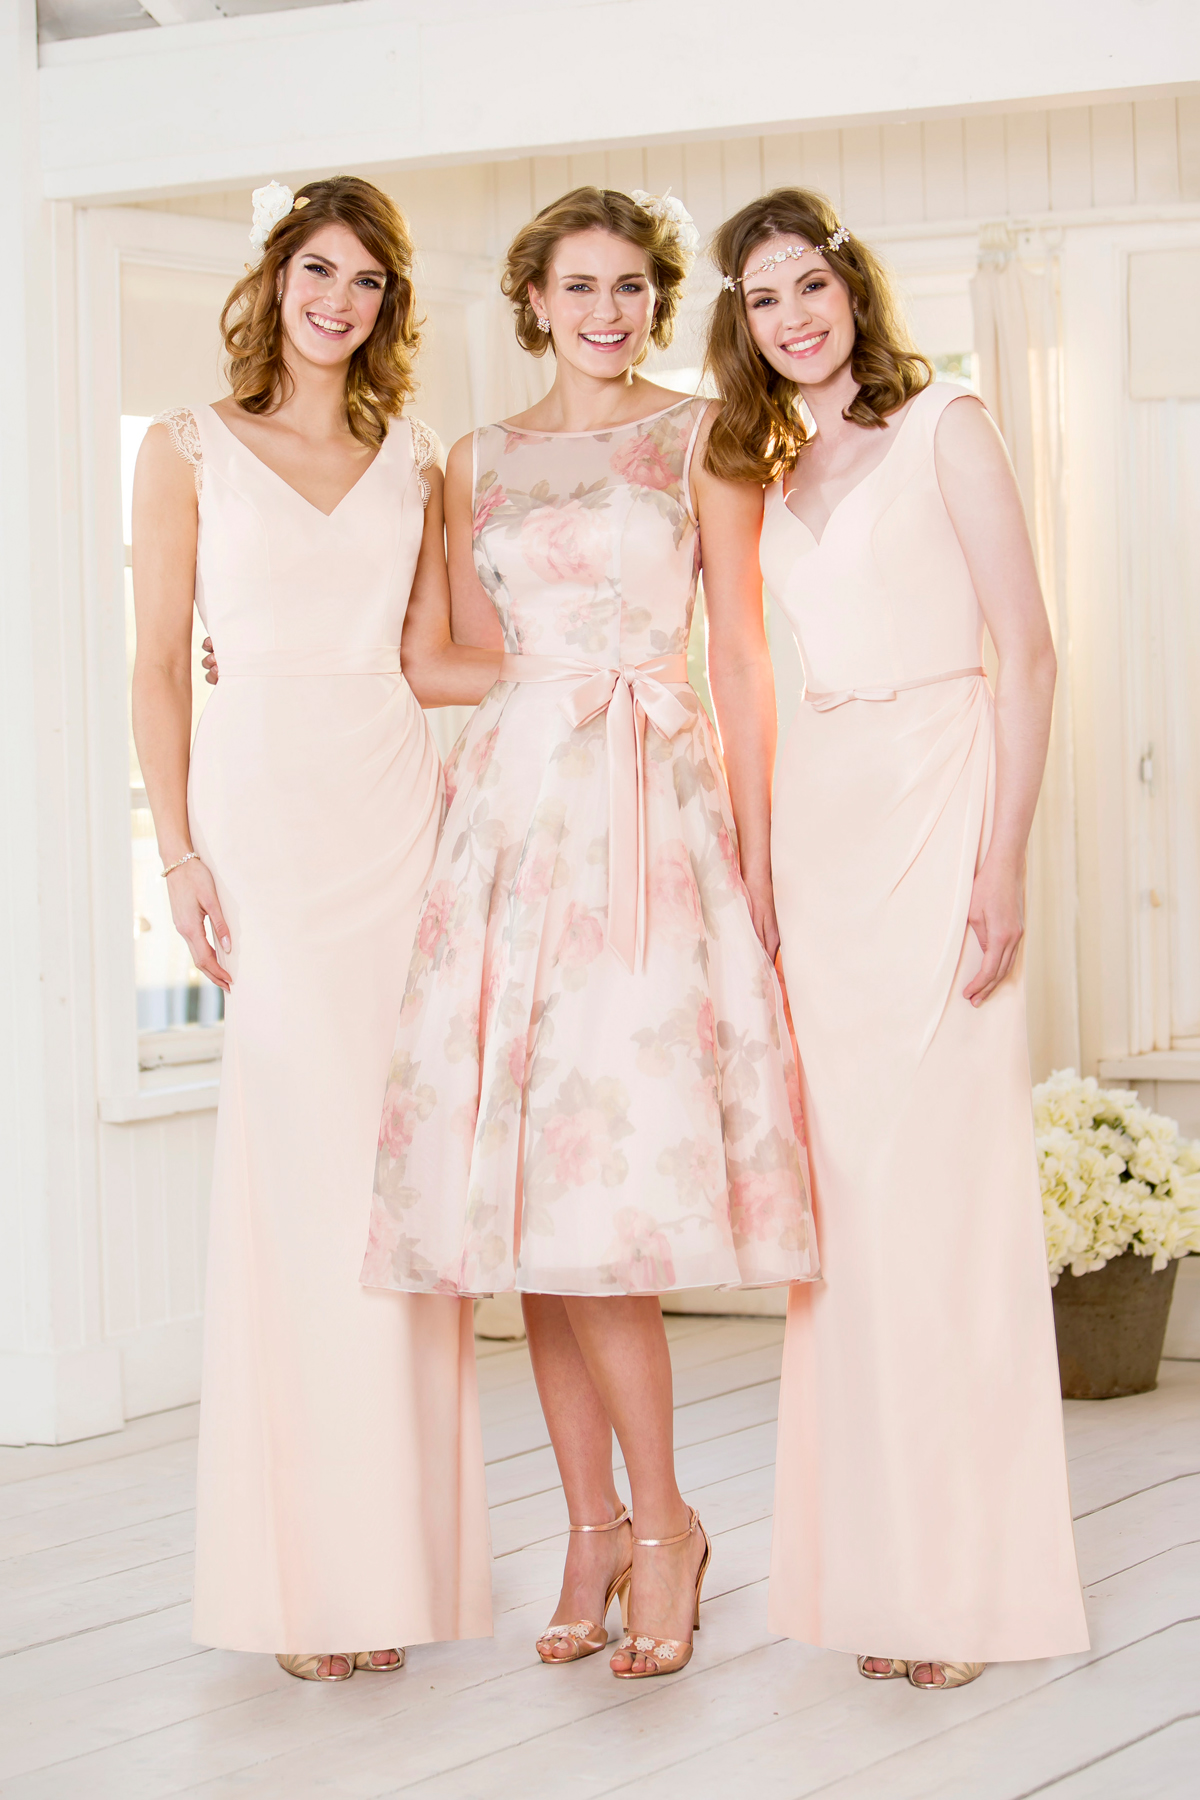 True bride figure flattering wedding dresses for brides pastel pink and floral bridesmaids dresses from true bride ombrellifo Gallery